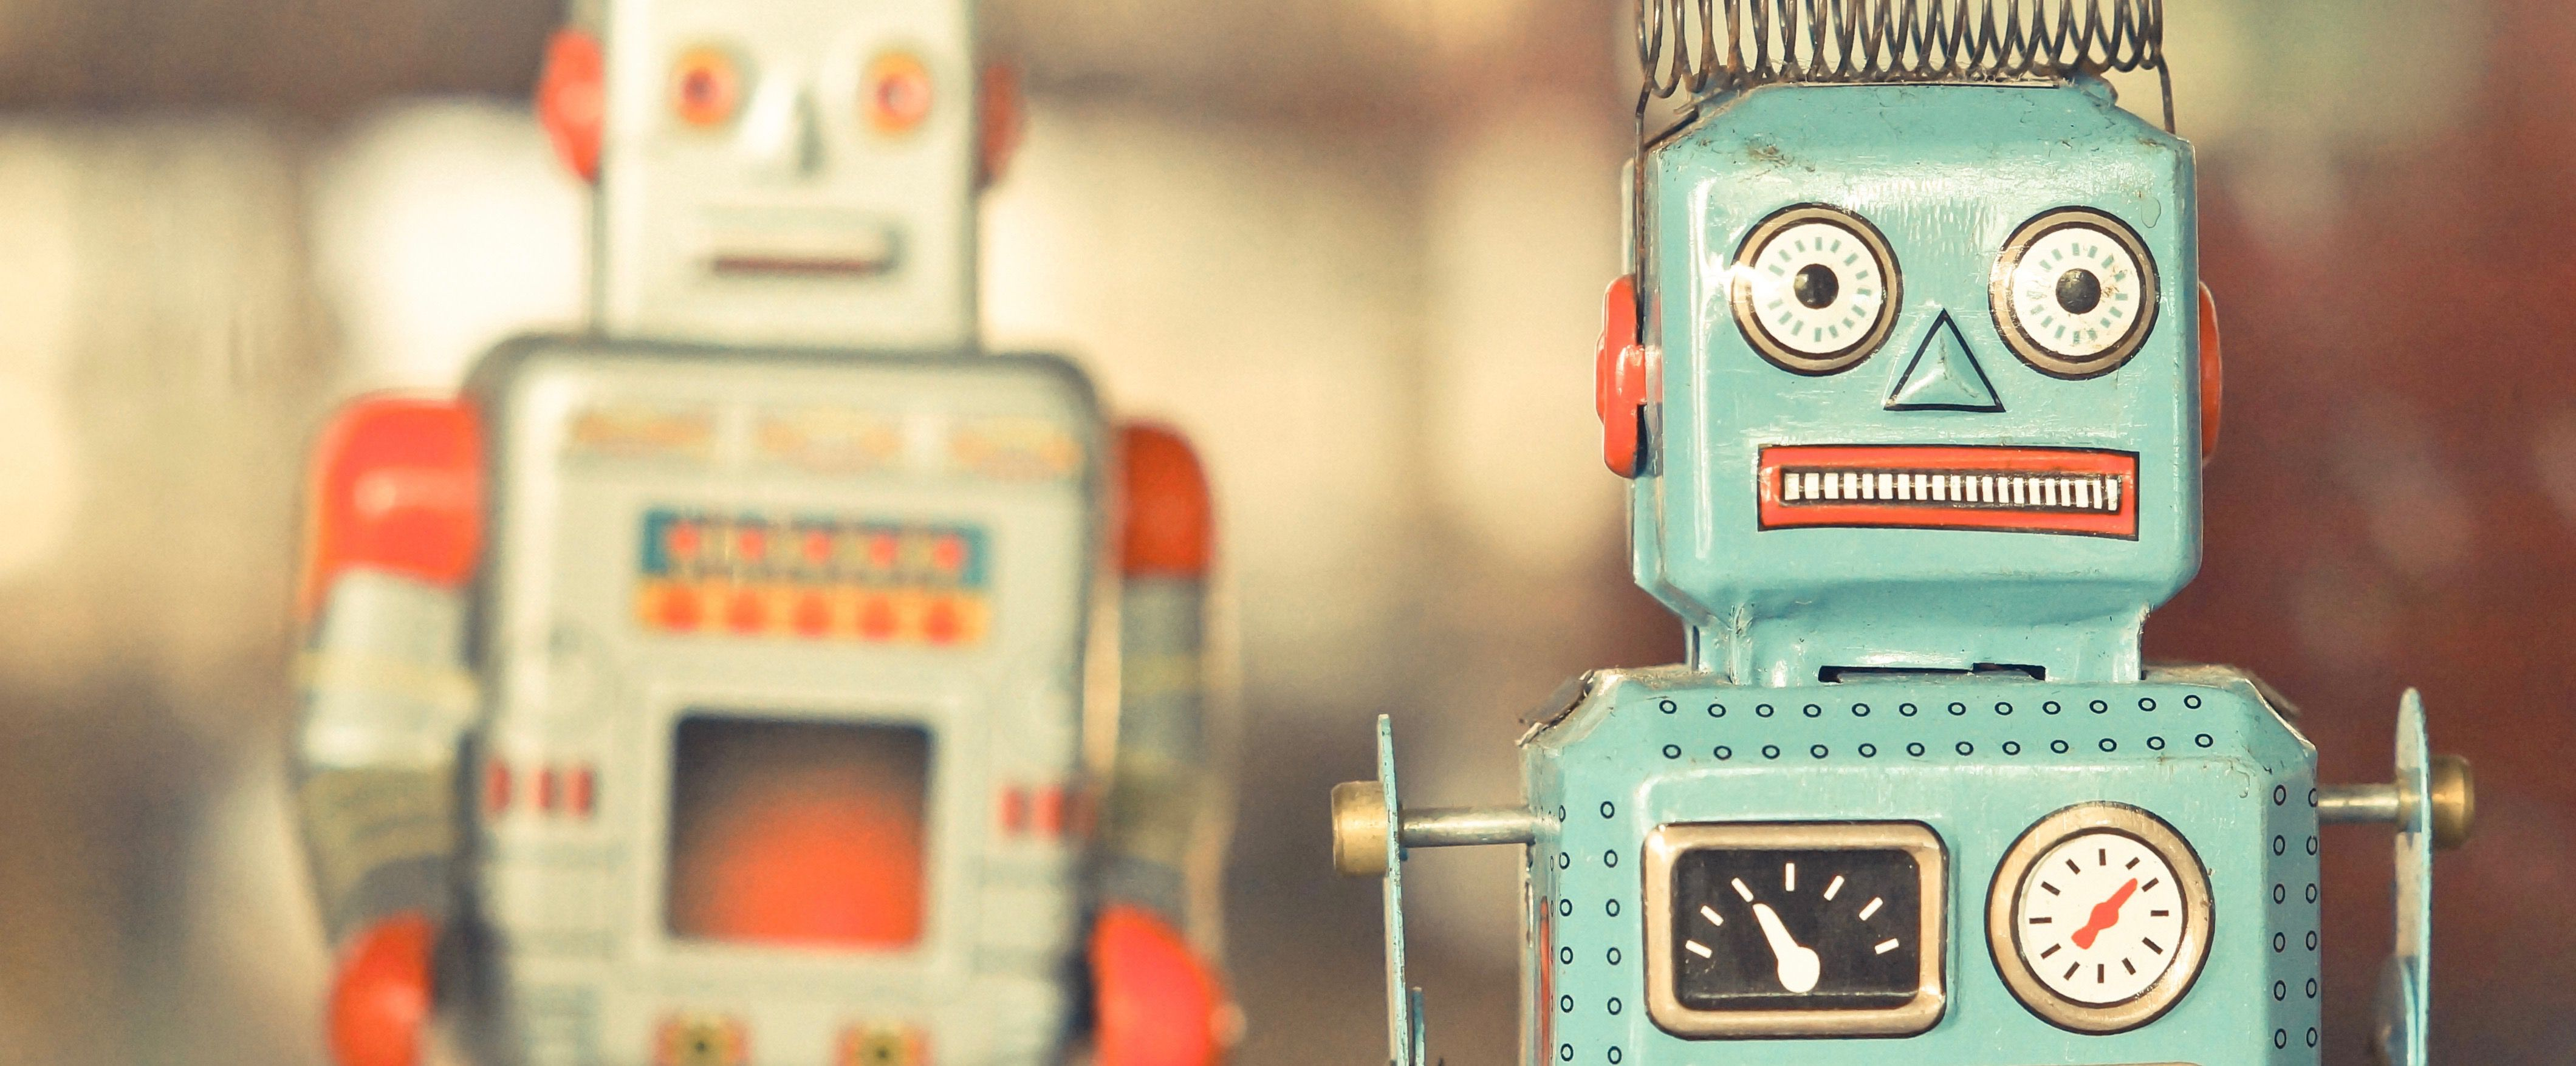 Good Bots vs. Bad Bots: How to Tell the Difference